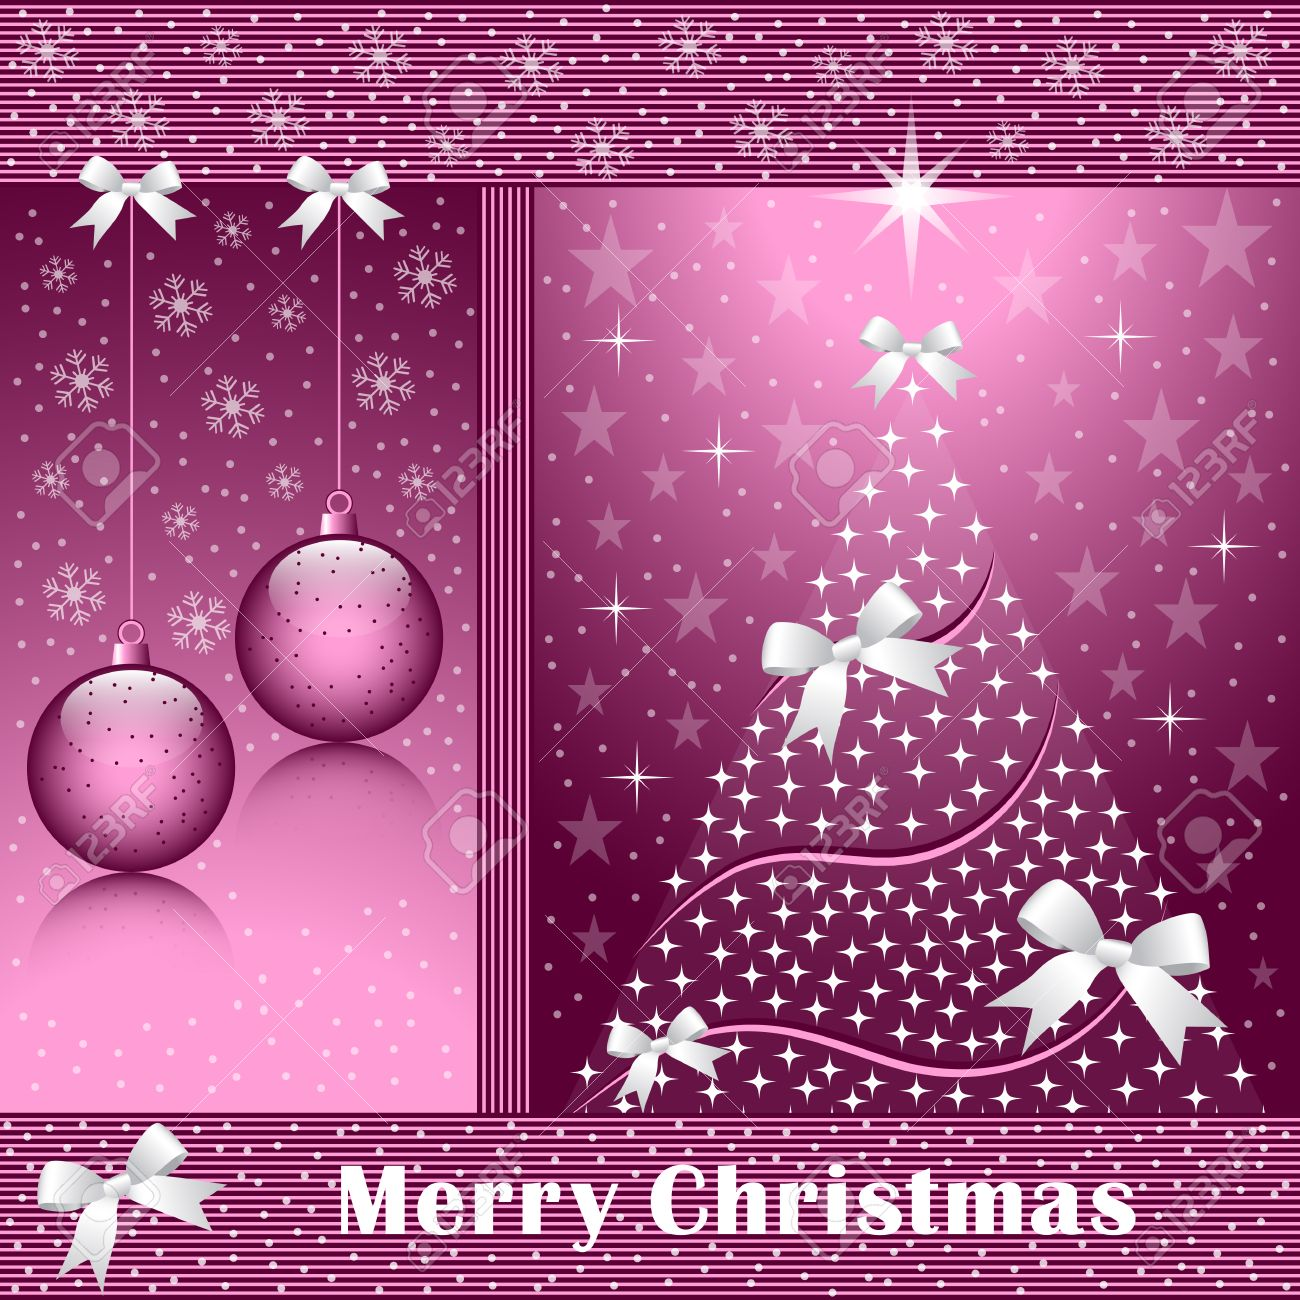 Christmas tree, balls, bows, stars, snowflakes and snow on a rose colored background. Stock Vector - 8093914